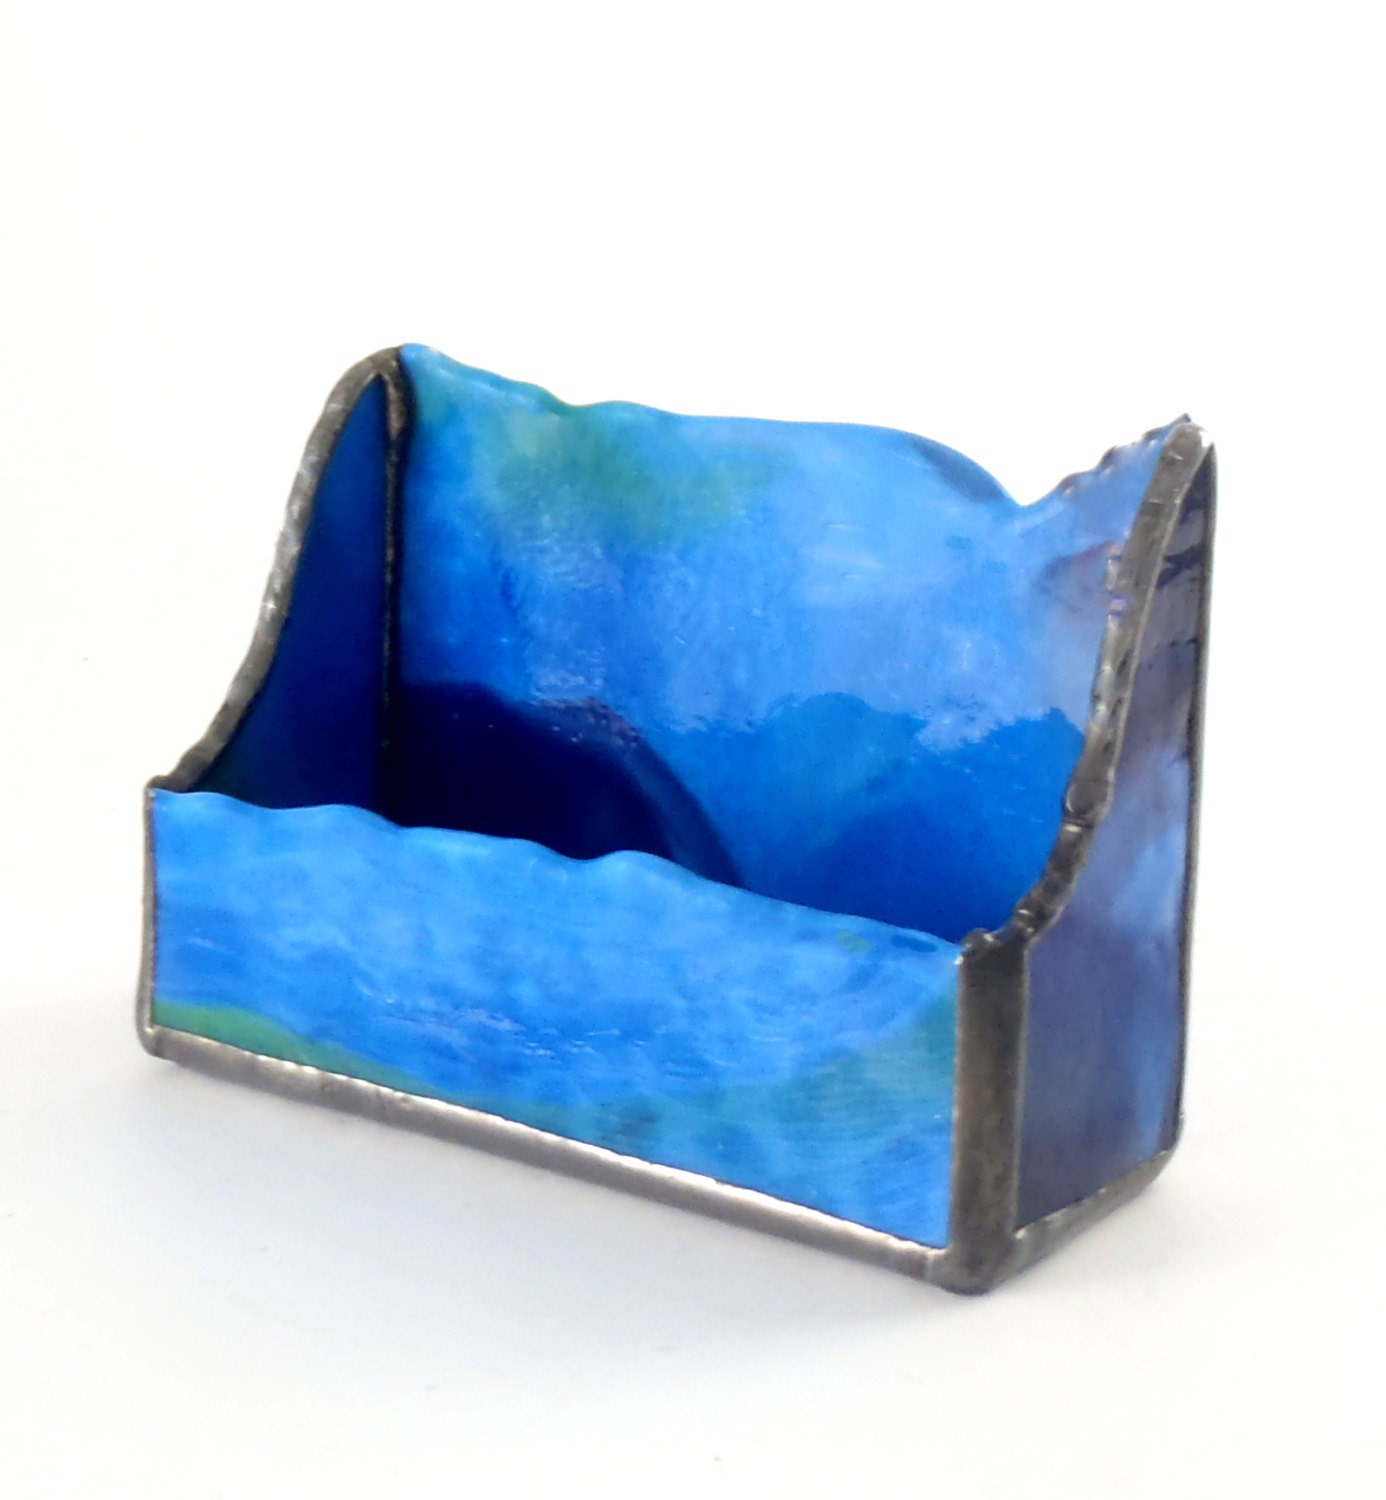 Unique business card holder desk accessories blue stained for Unique business card cases